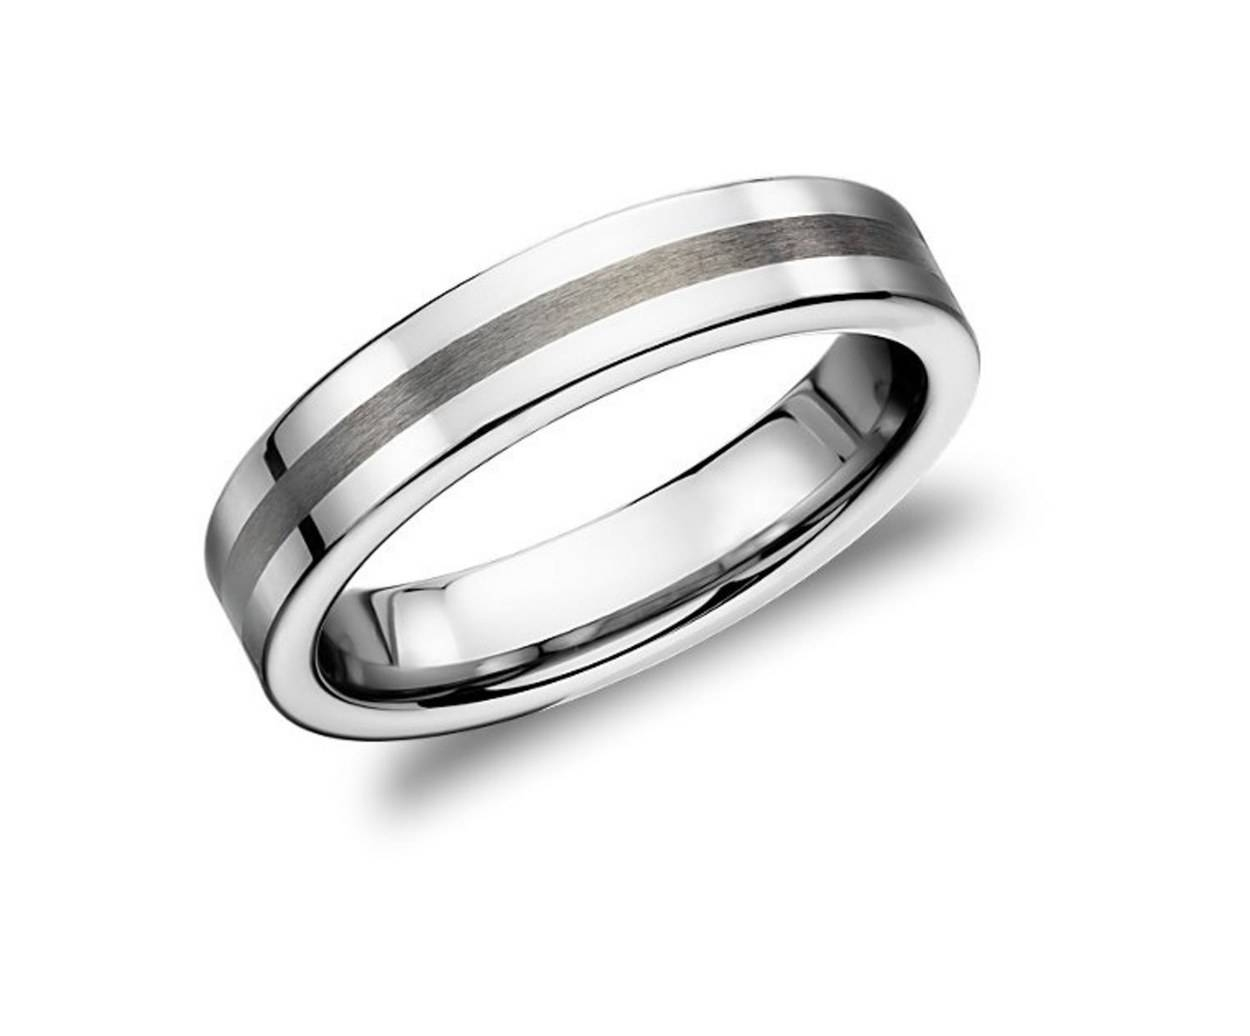 15 Men's Wedding Bands Your Groom Won't Want To Take Off | Glamour Inside Matte Black Men's Wedding Bands (Gallery 6 of 15)